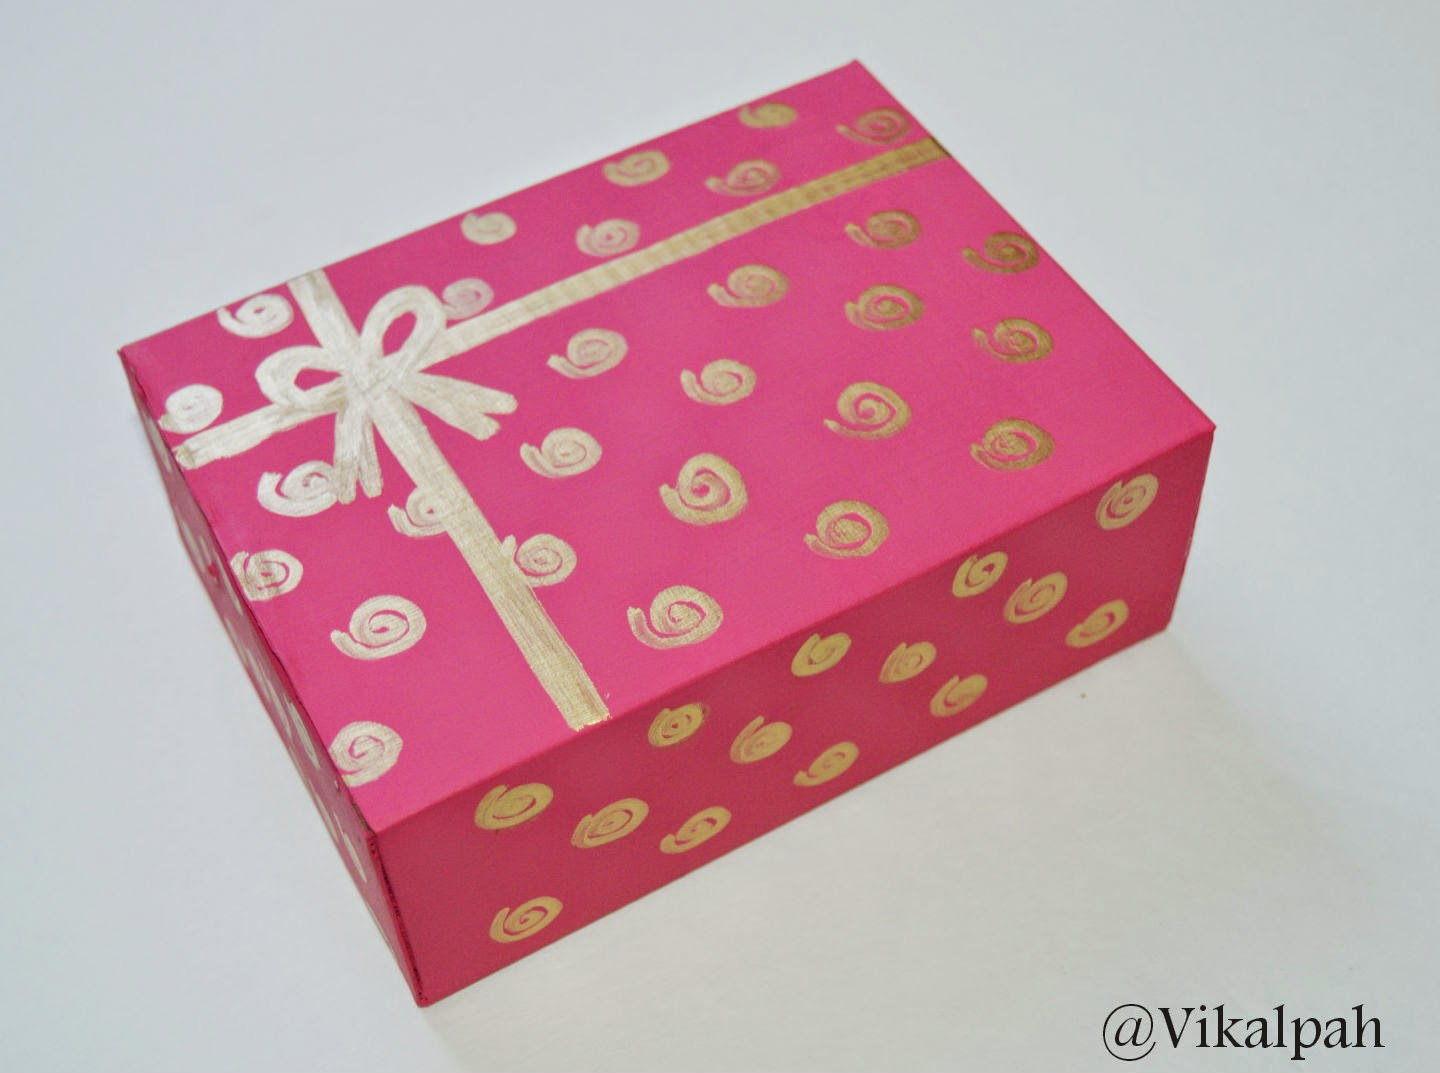 Vikalpah diy pretty gift boxes why buy those gift boxes when you can make your own personalized one these simple techniques costs you fraction of amount that you spend on store bought negle Images